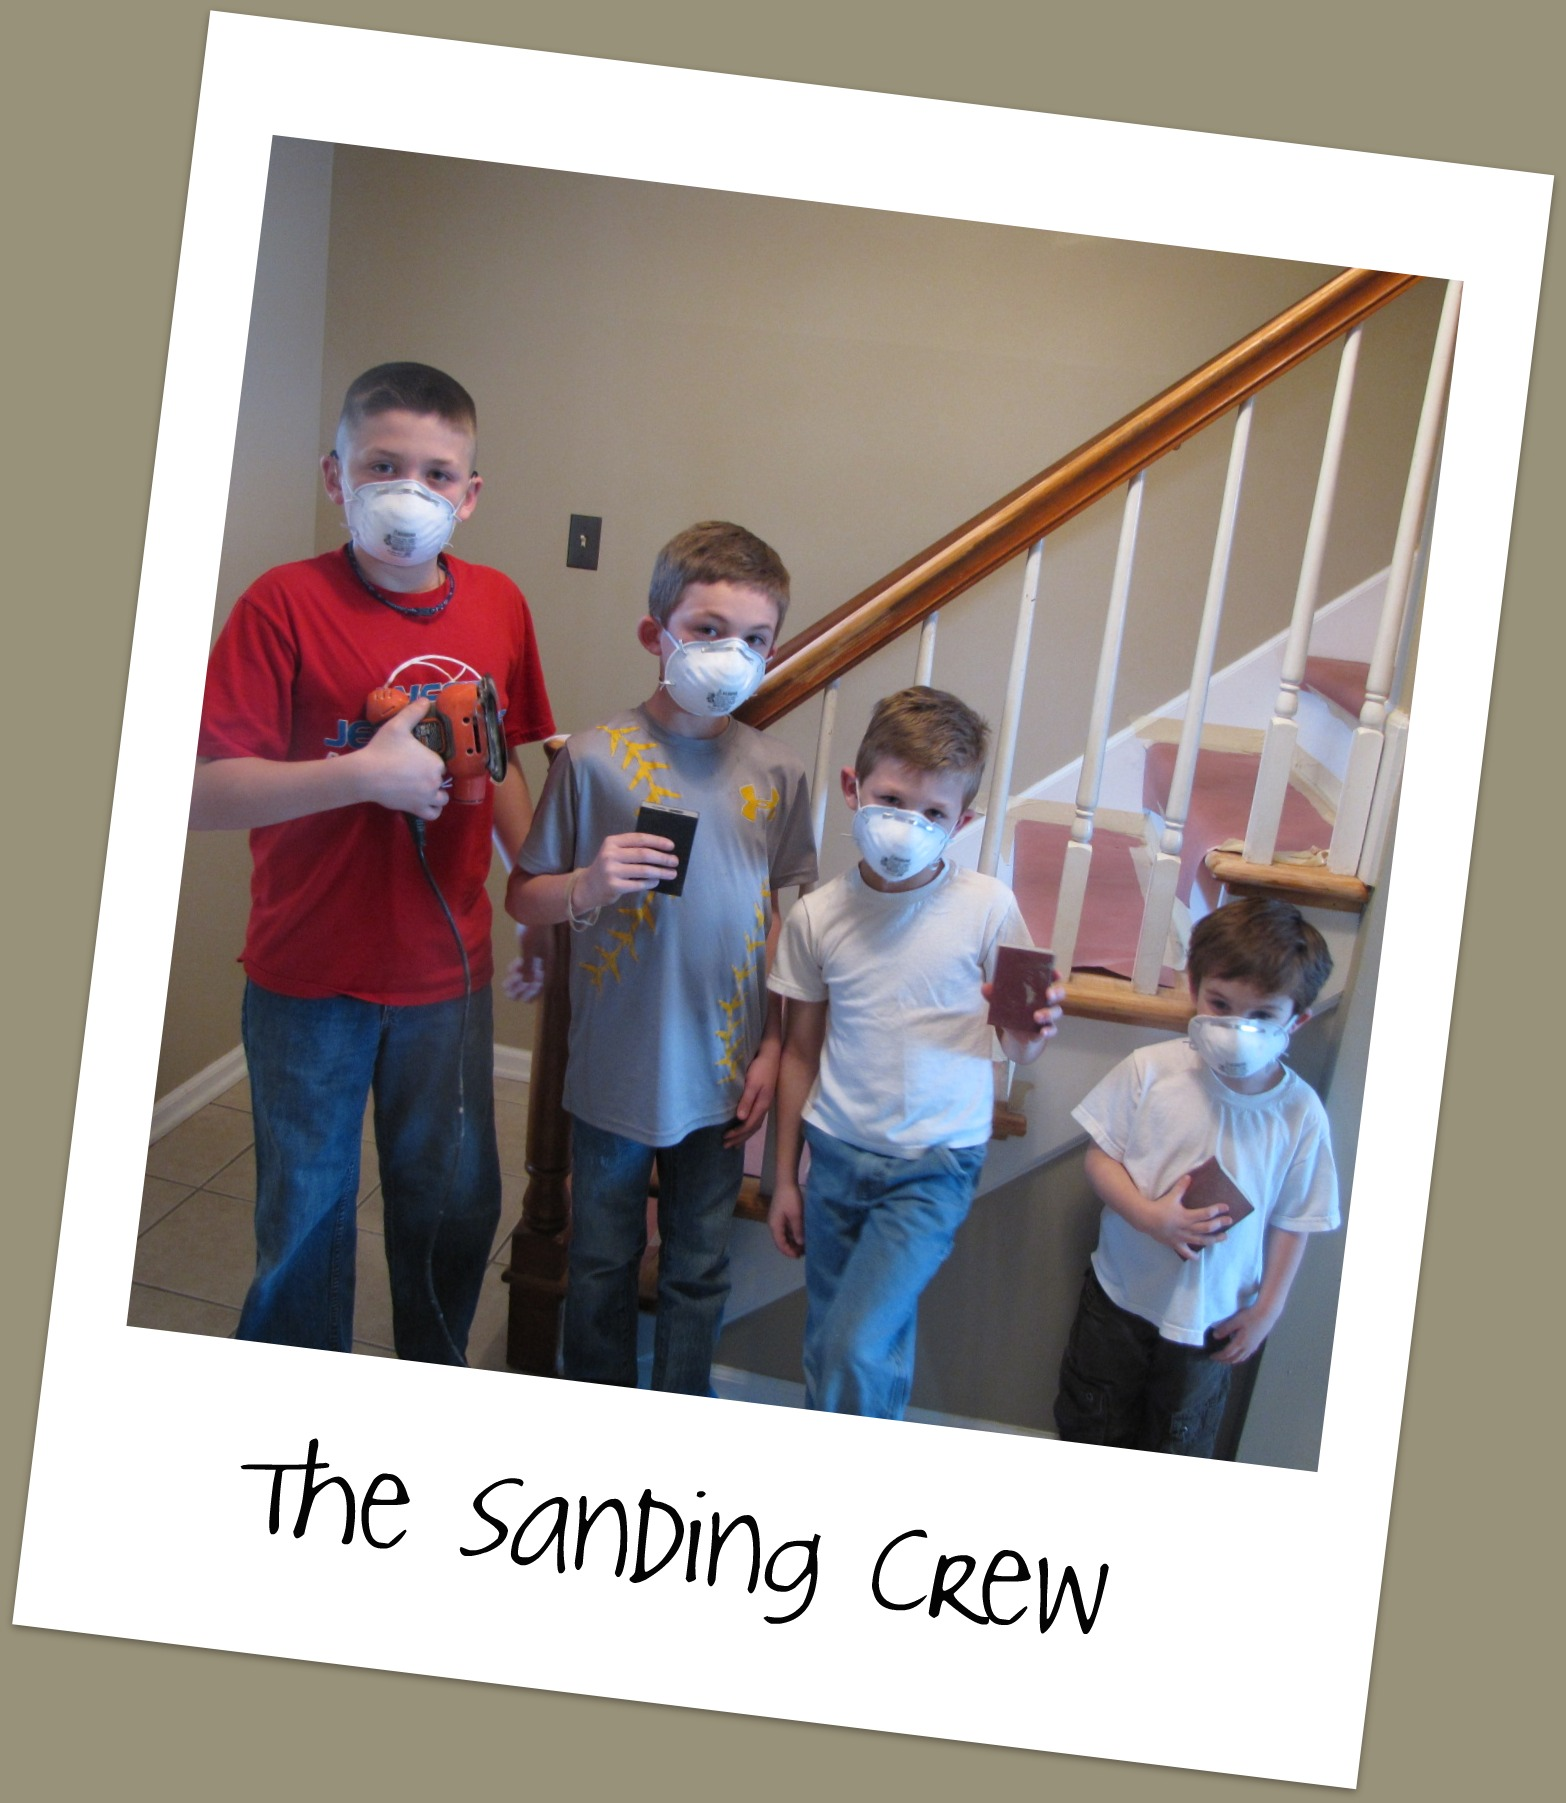 The Sanding Crew {You HAVE to watch this video…guaranteed smiles!}